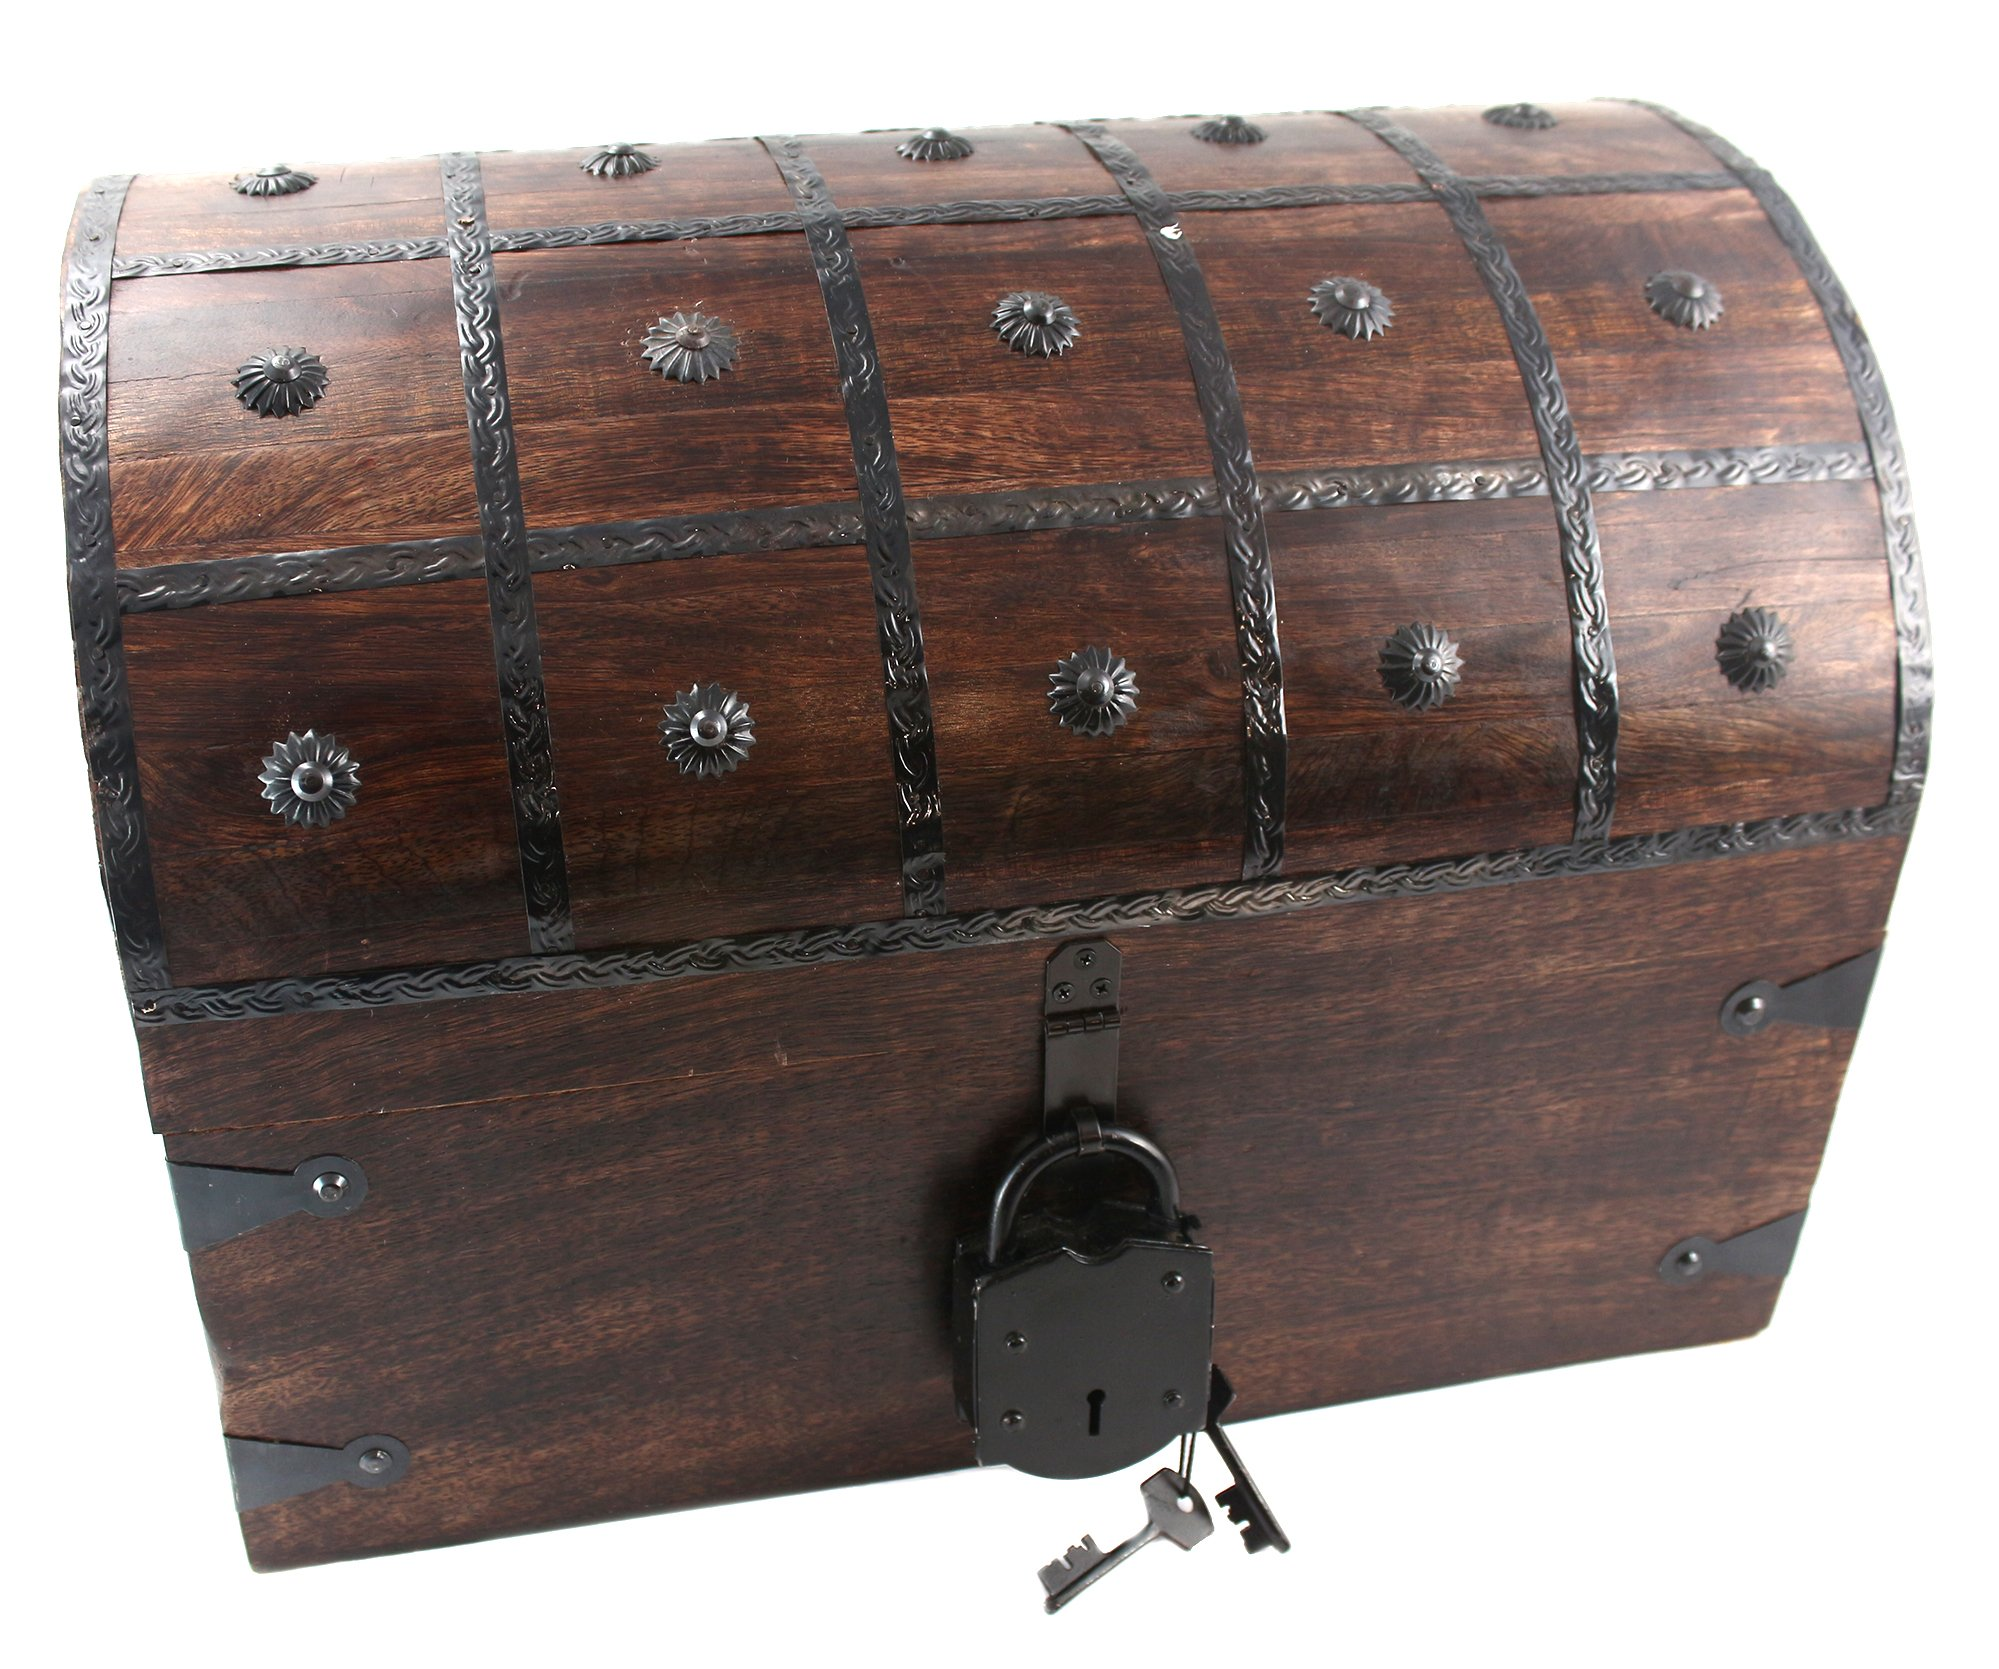 WellPackBox Wooden Pirate Treasure Chest Box With Antique Style Lock And Skeleton Key (Giant)